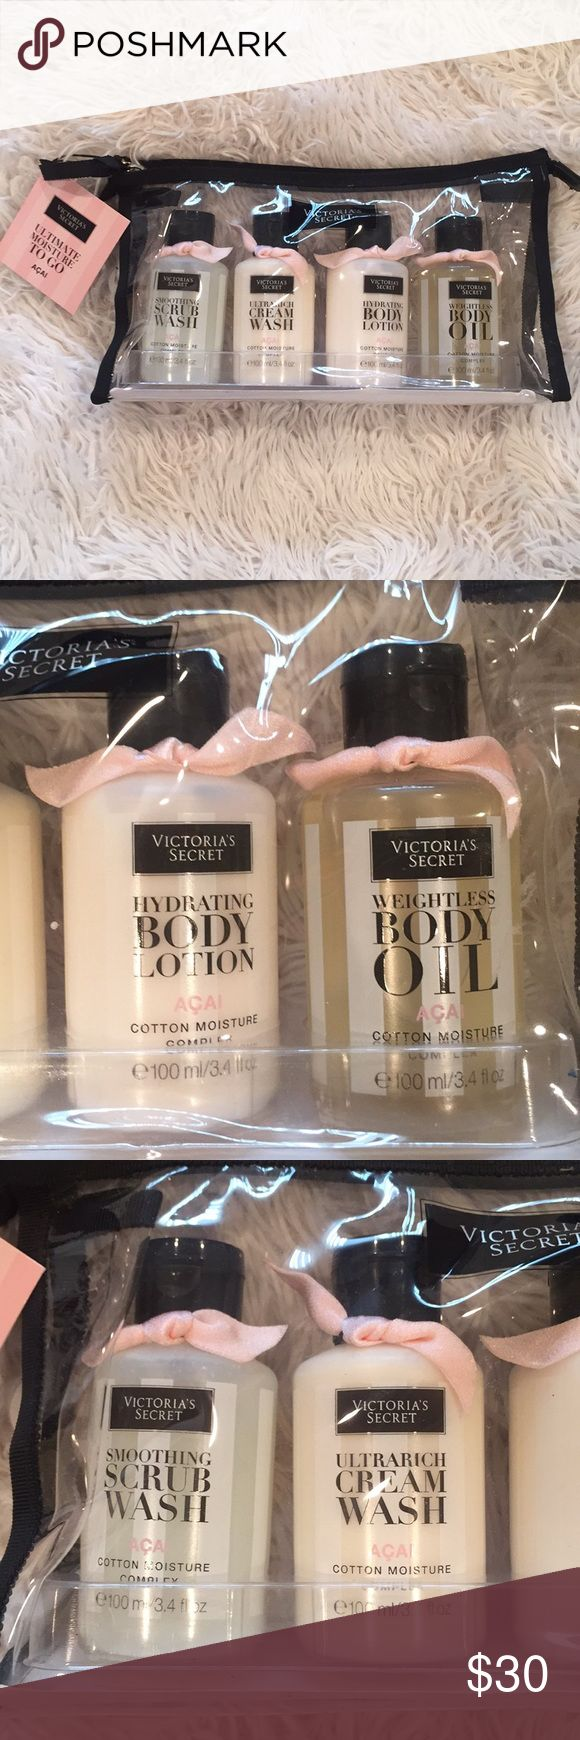 Victoria's Secret ultimate moisture TO GO Brand new with tags. Including smoothing scrub wash, ultimate cream wash, hydrating body lotion, weightless body oil. Each one is 100ml/3.4 fl oz. Victoria's Secret Other